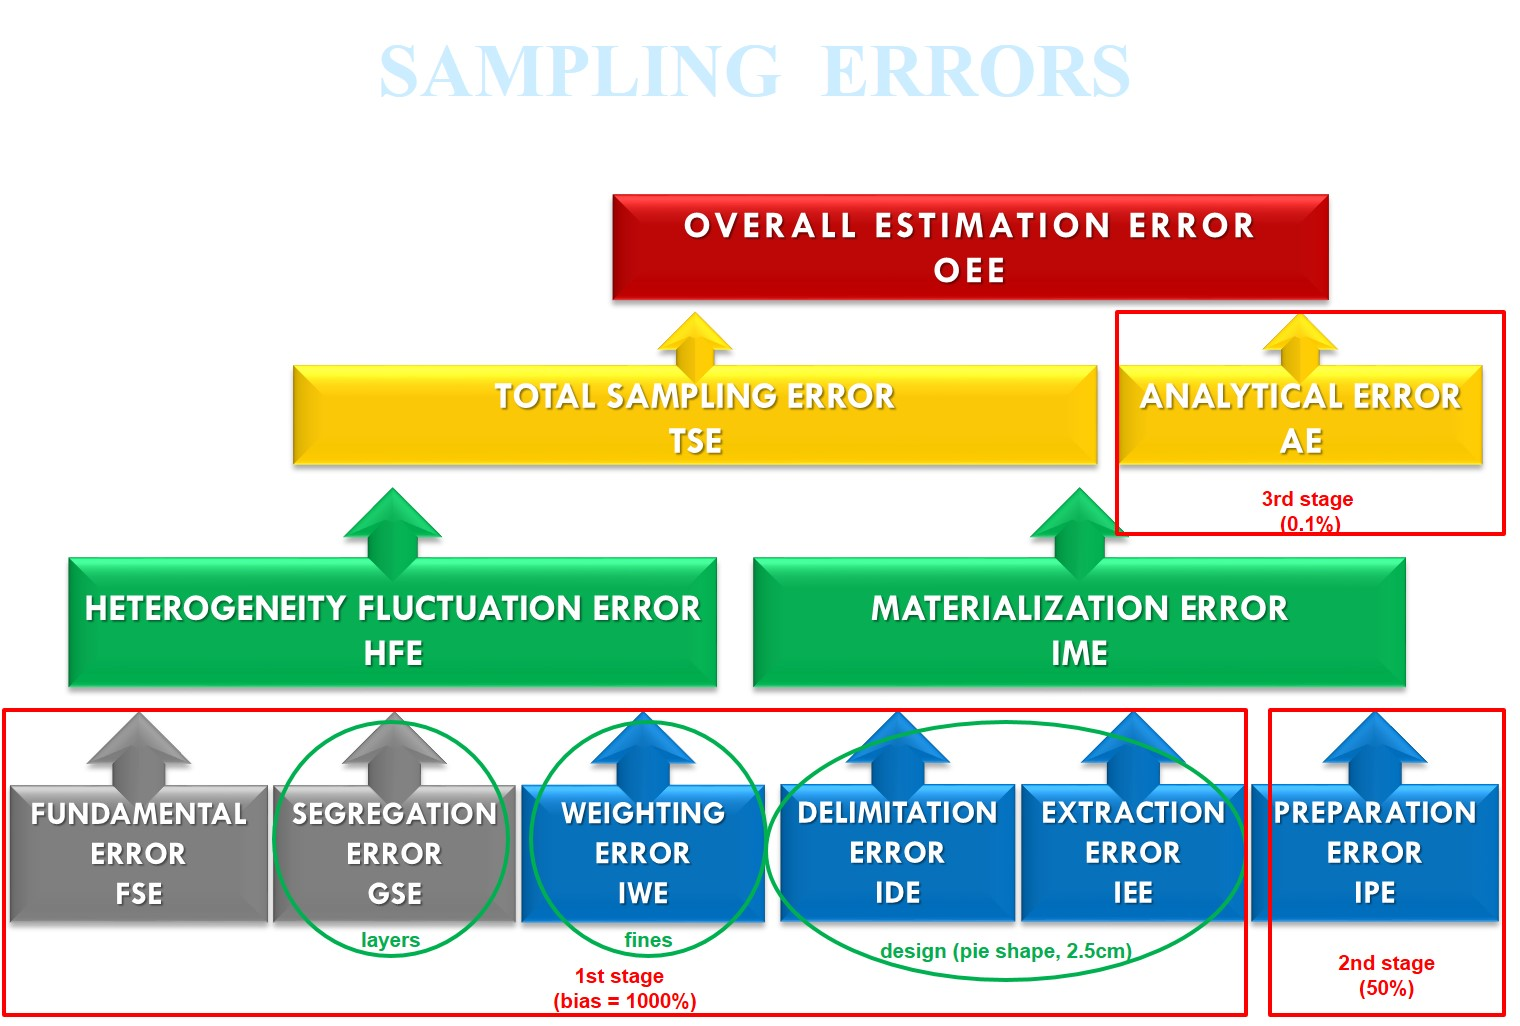 Progradex Eliminates ALL Sampling Errors